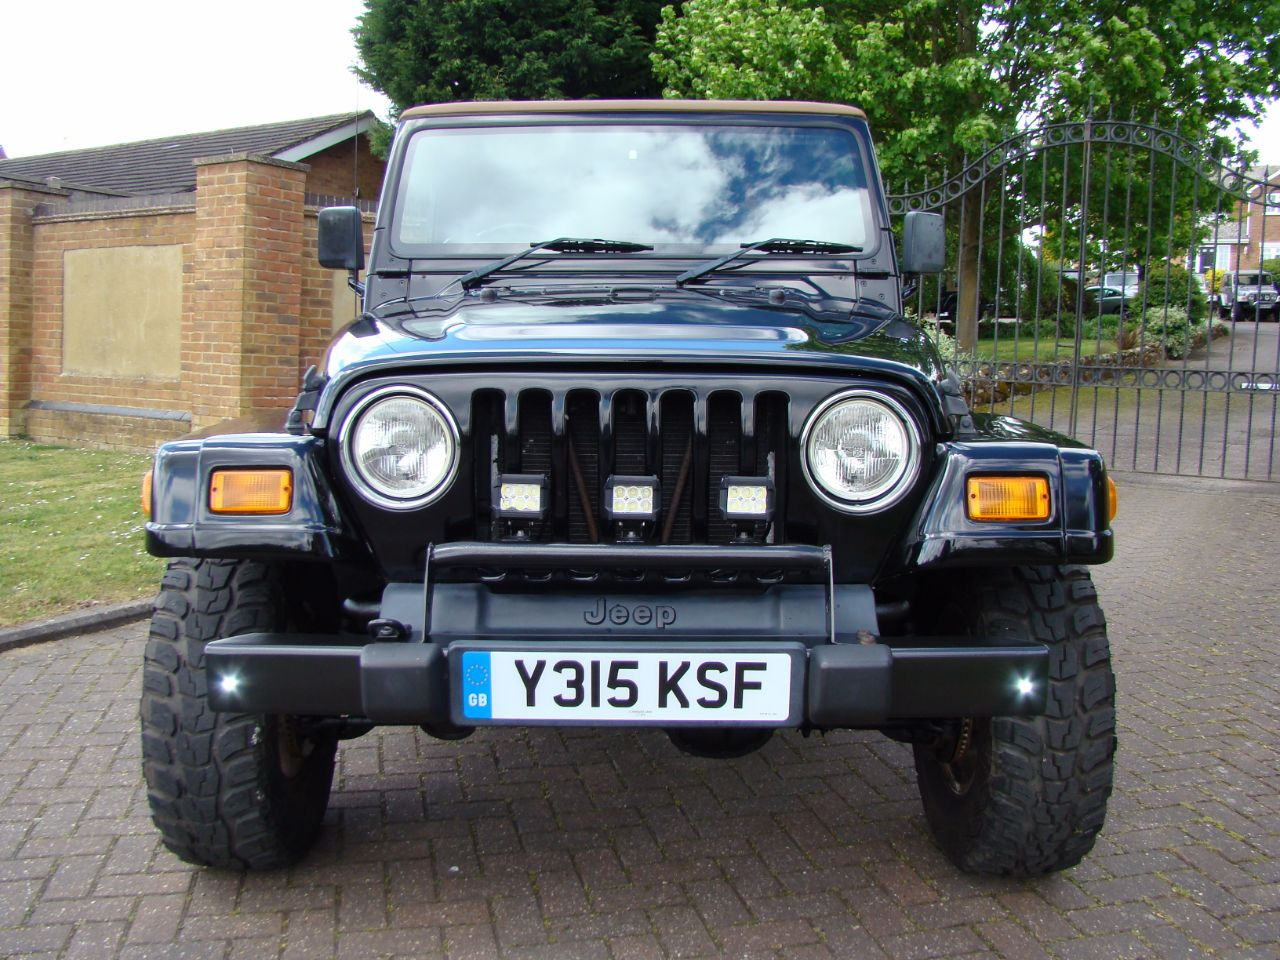 2001 Jeep Wrangler 4.0L Sahara Soft Top